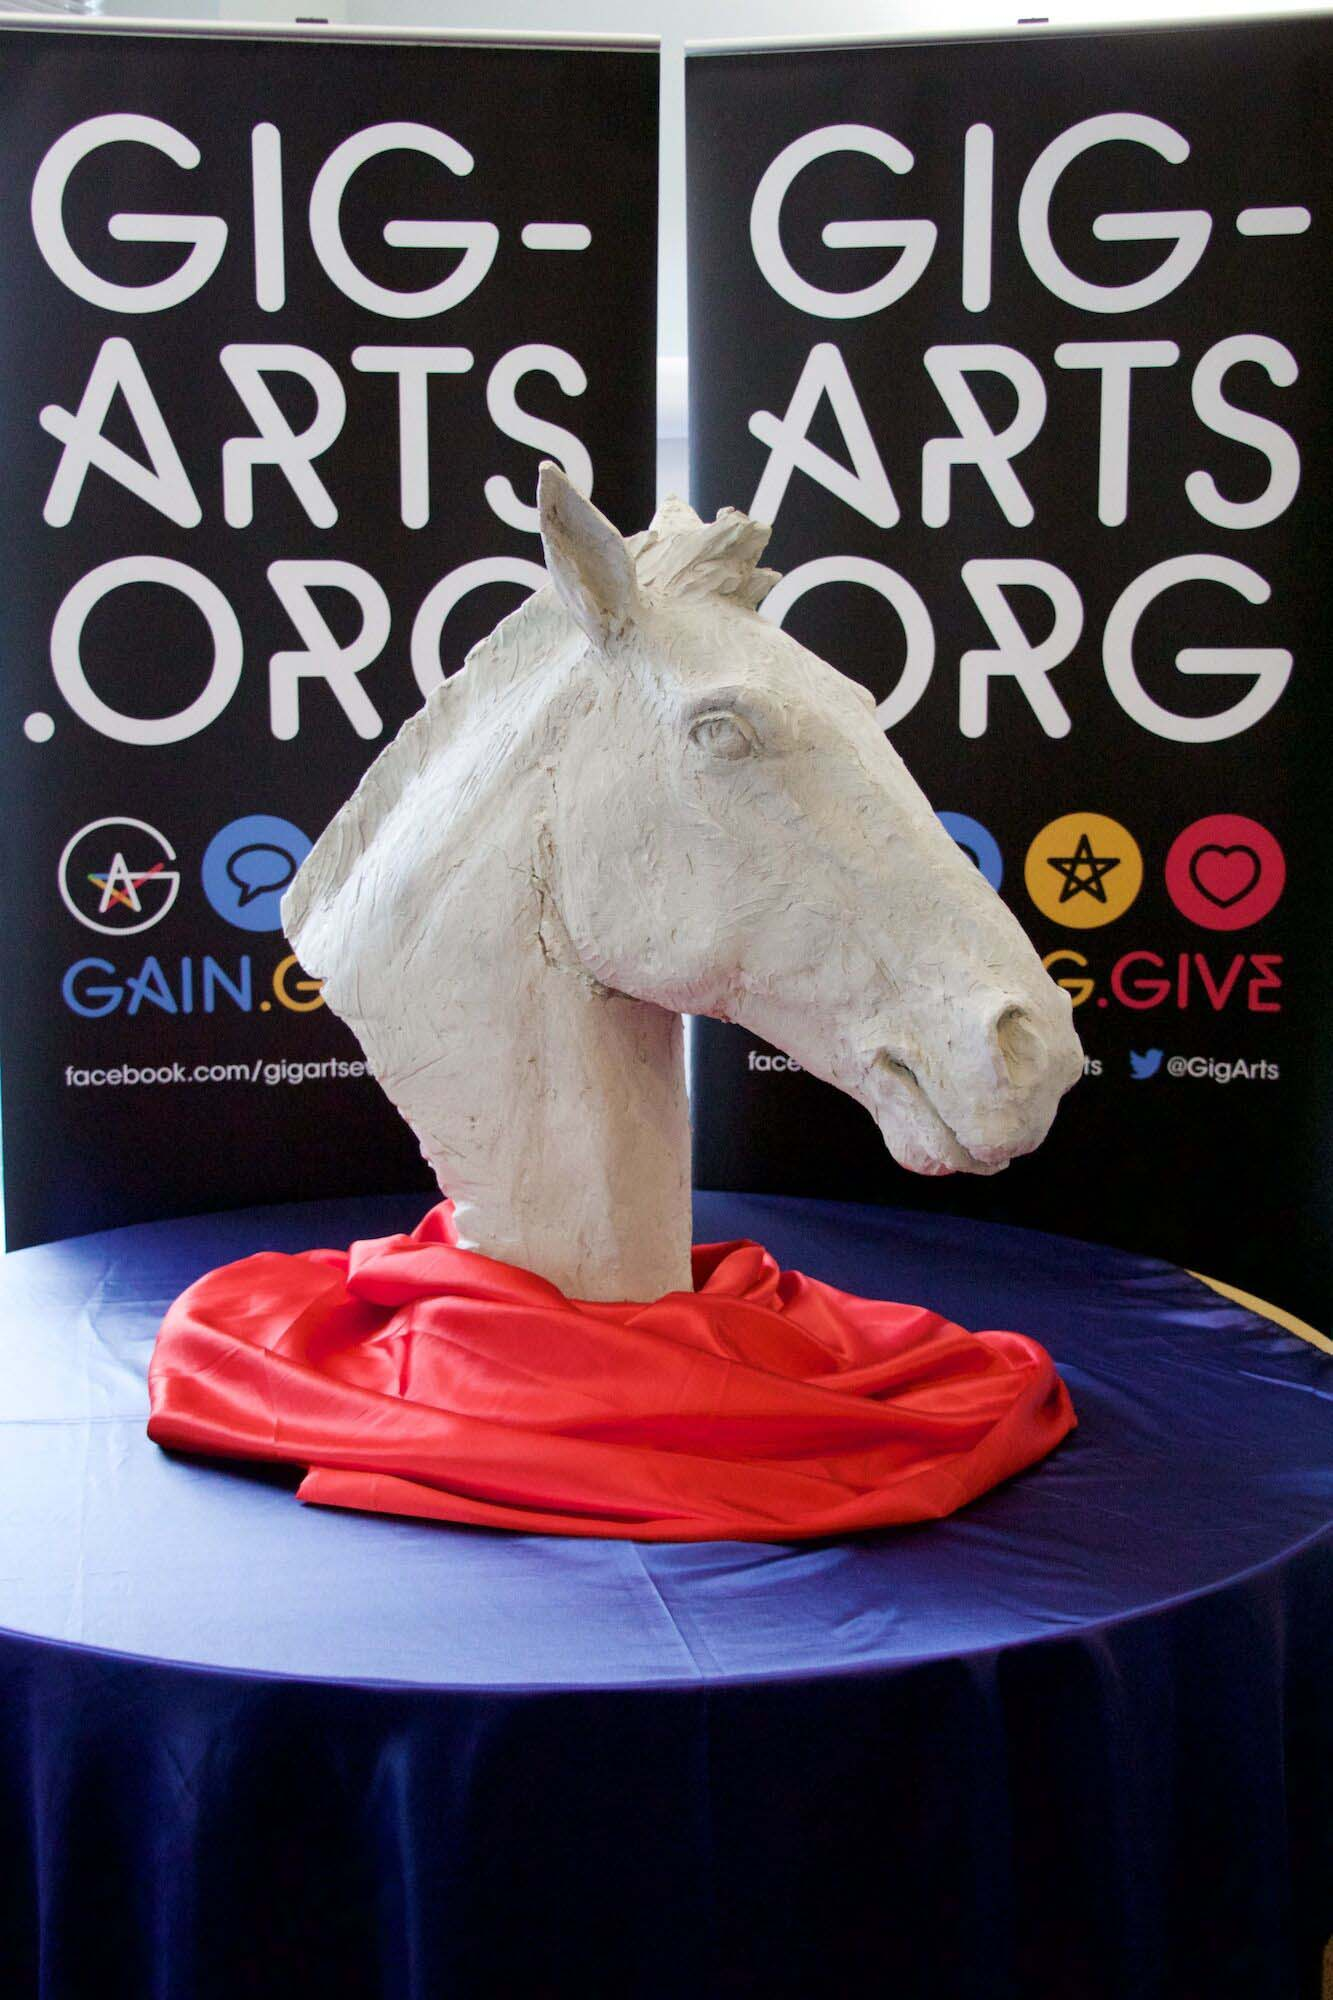 The Gig-Arts Banbury Horse Head displayed at Bloxham Mill Business Centre